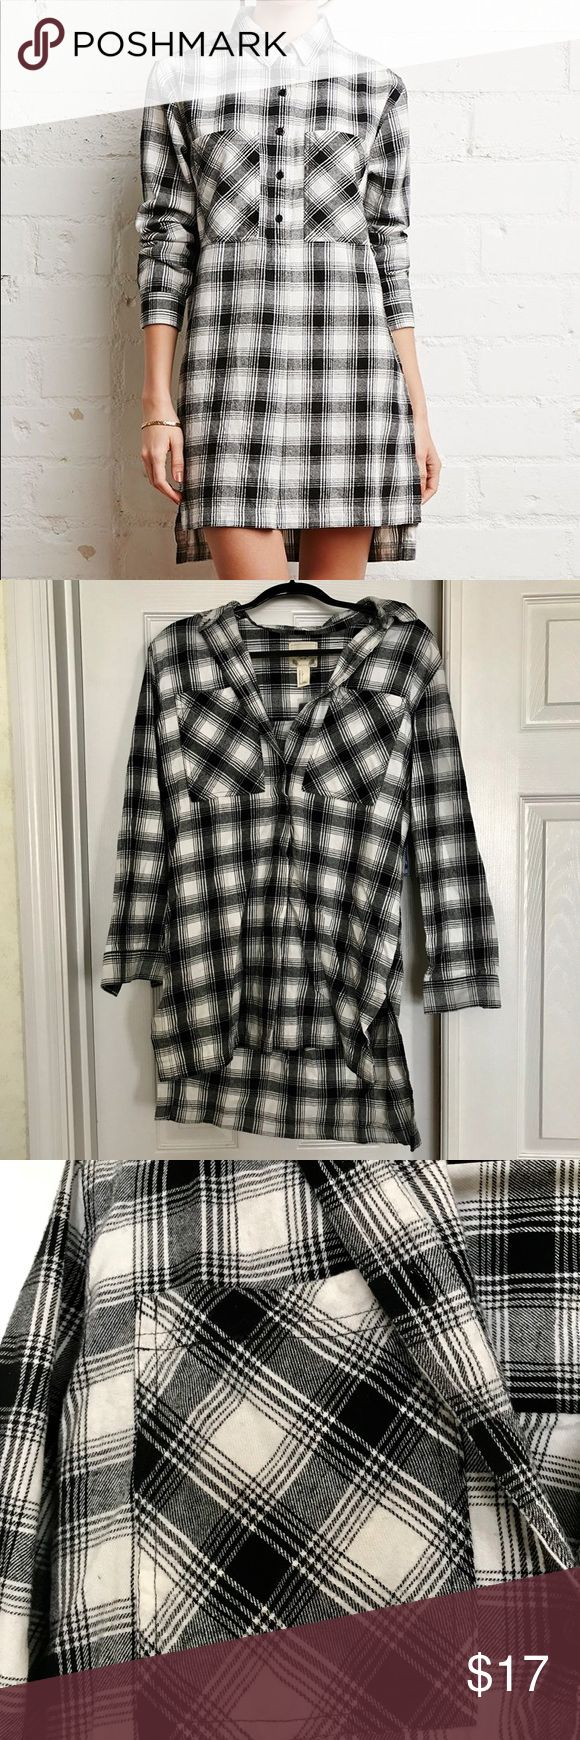 Forever 21 • Black and White Flannel Dress BRAND NEW. In perfect condition. Two giant breast pockets (ladies we all know this is a blessing!). Top half bottom up bottom half connected. Can button up all the way (like the cover shot) or keep some buttons unhooked. Will look great with leggings or jeans or on its own. Two buttons on wrist (shown in pics). Forever 21 Dresses Long Sleeve